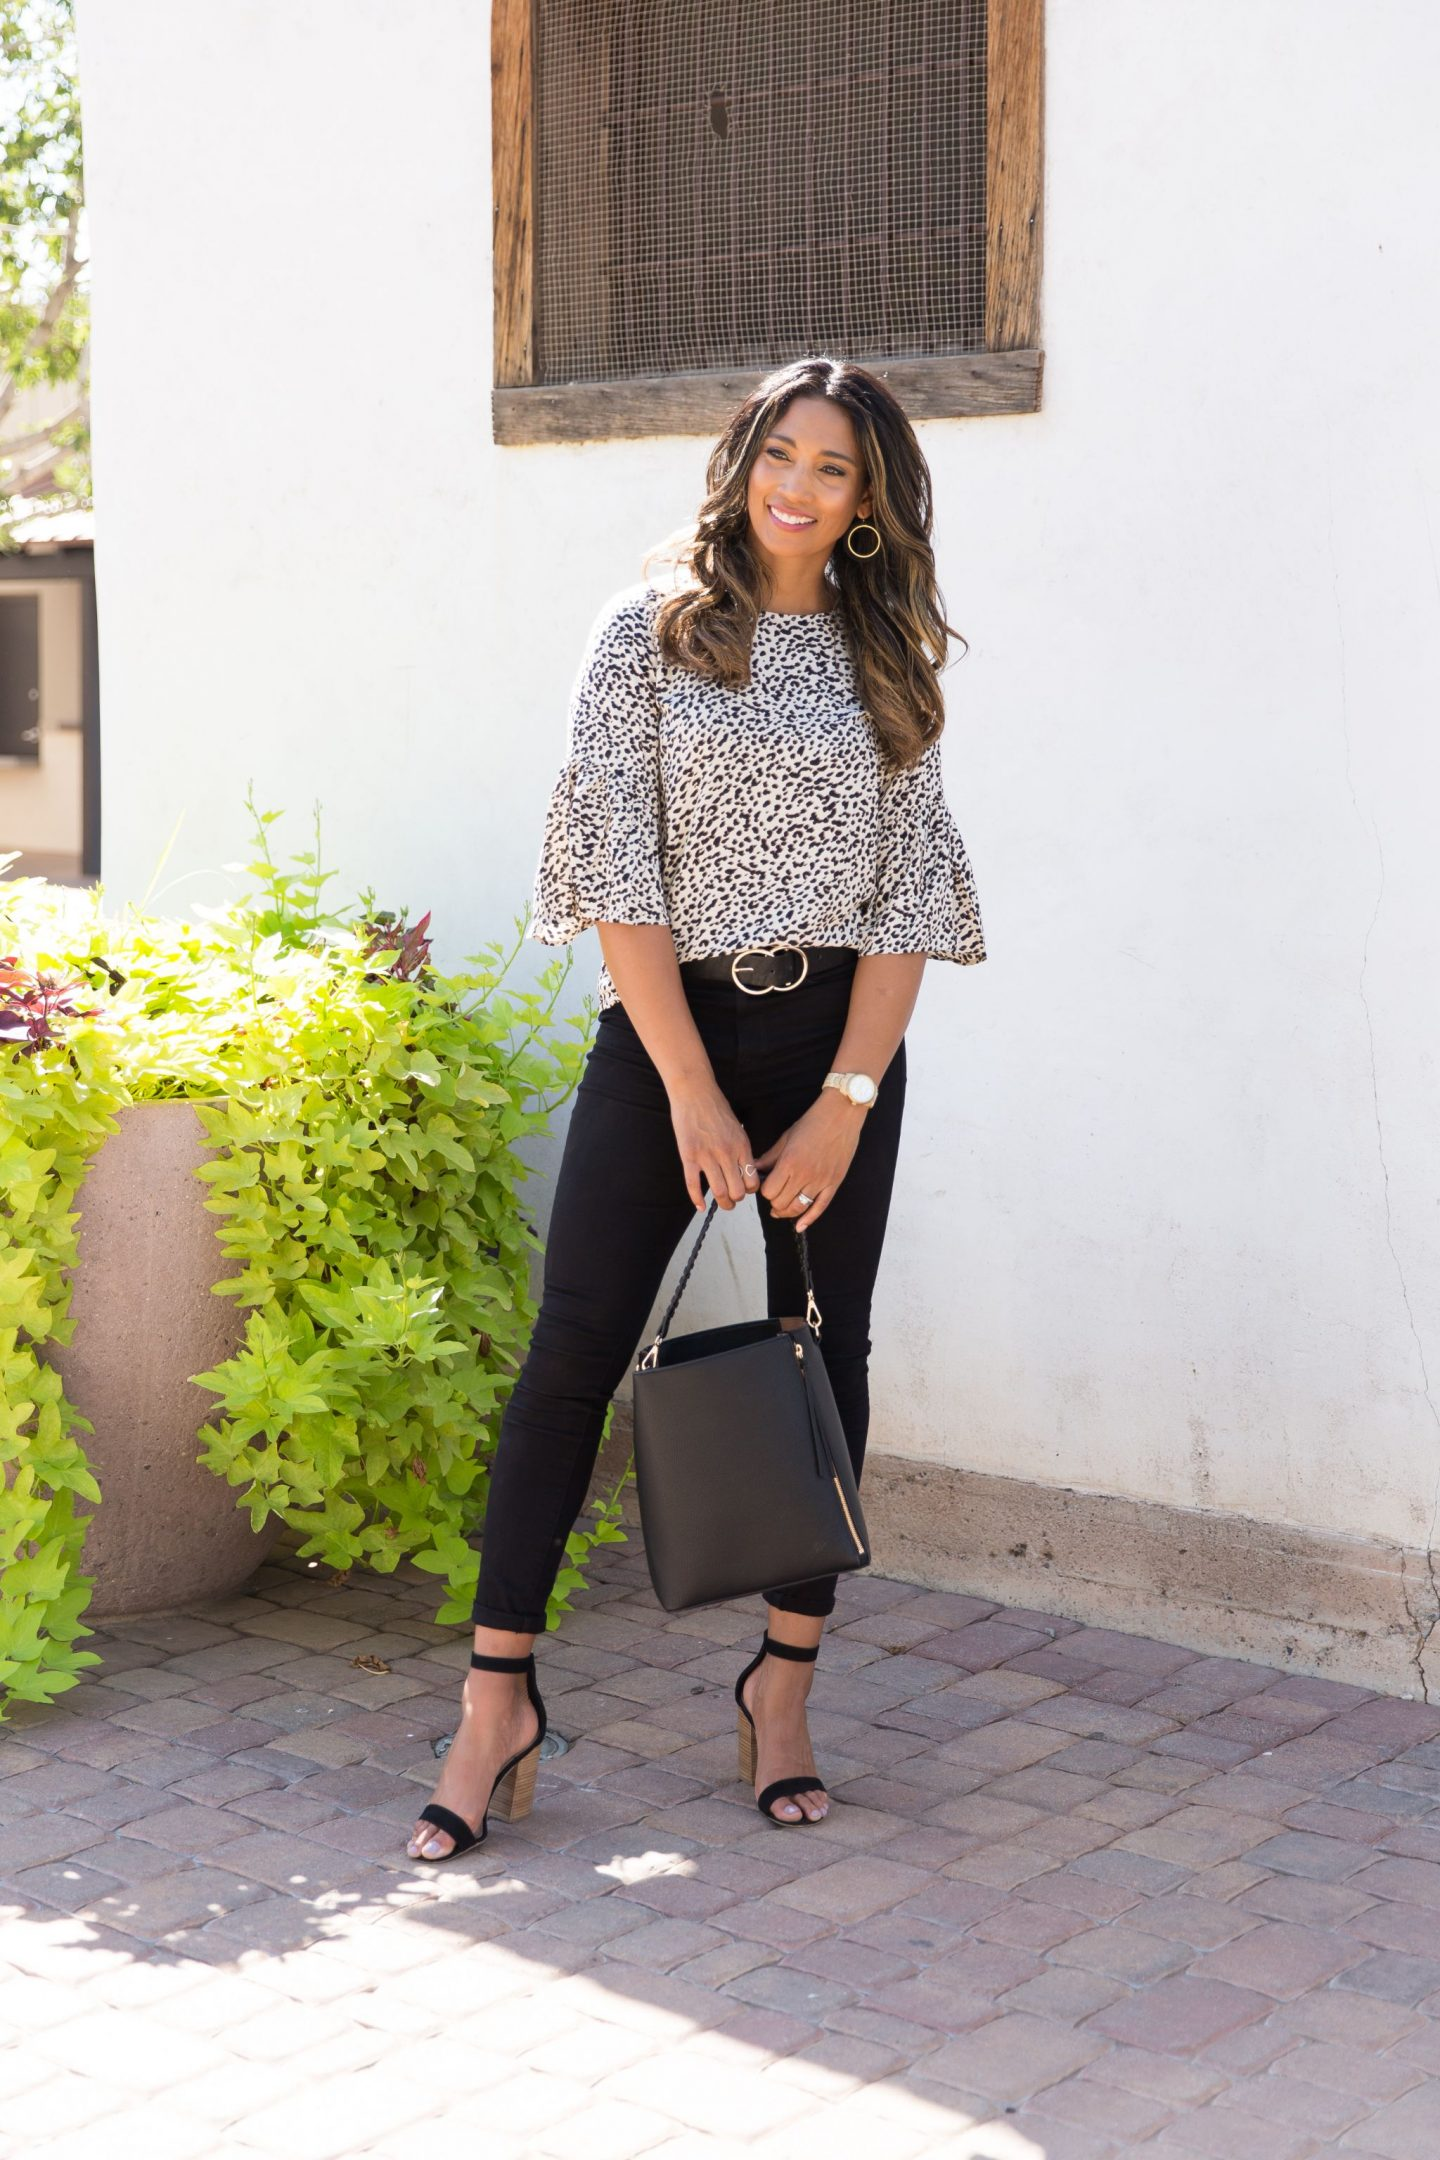 CHEETAH PRINT, WORK BLOUSE, OUTFIT INSPO, CASUAL LOOK, FALL FASHION, FALL LOOK, FALL STYLE, SCOTTSDALE BLOGGER